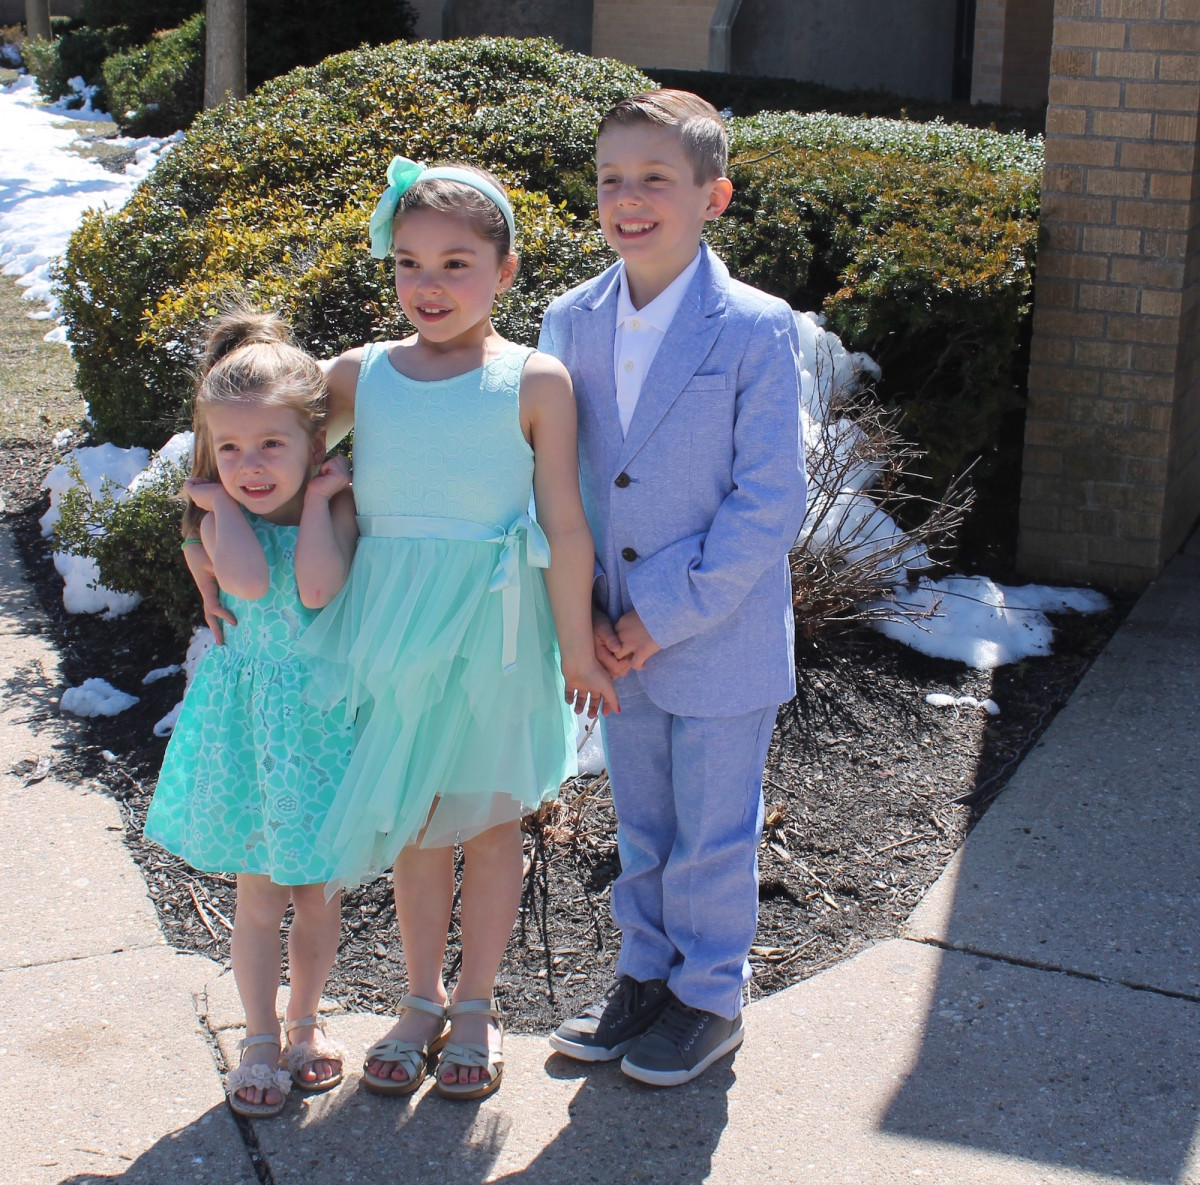 special occasion clothing for children - MomTrends